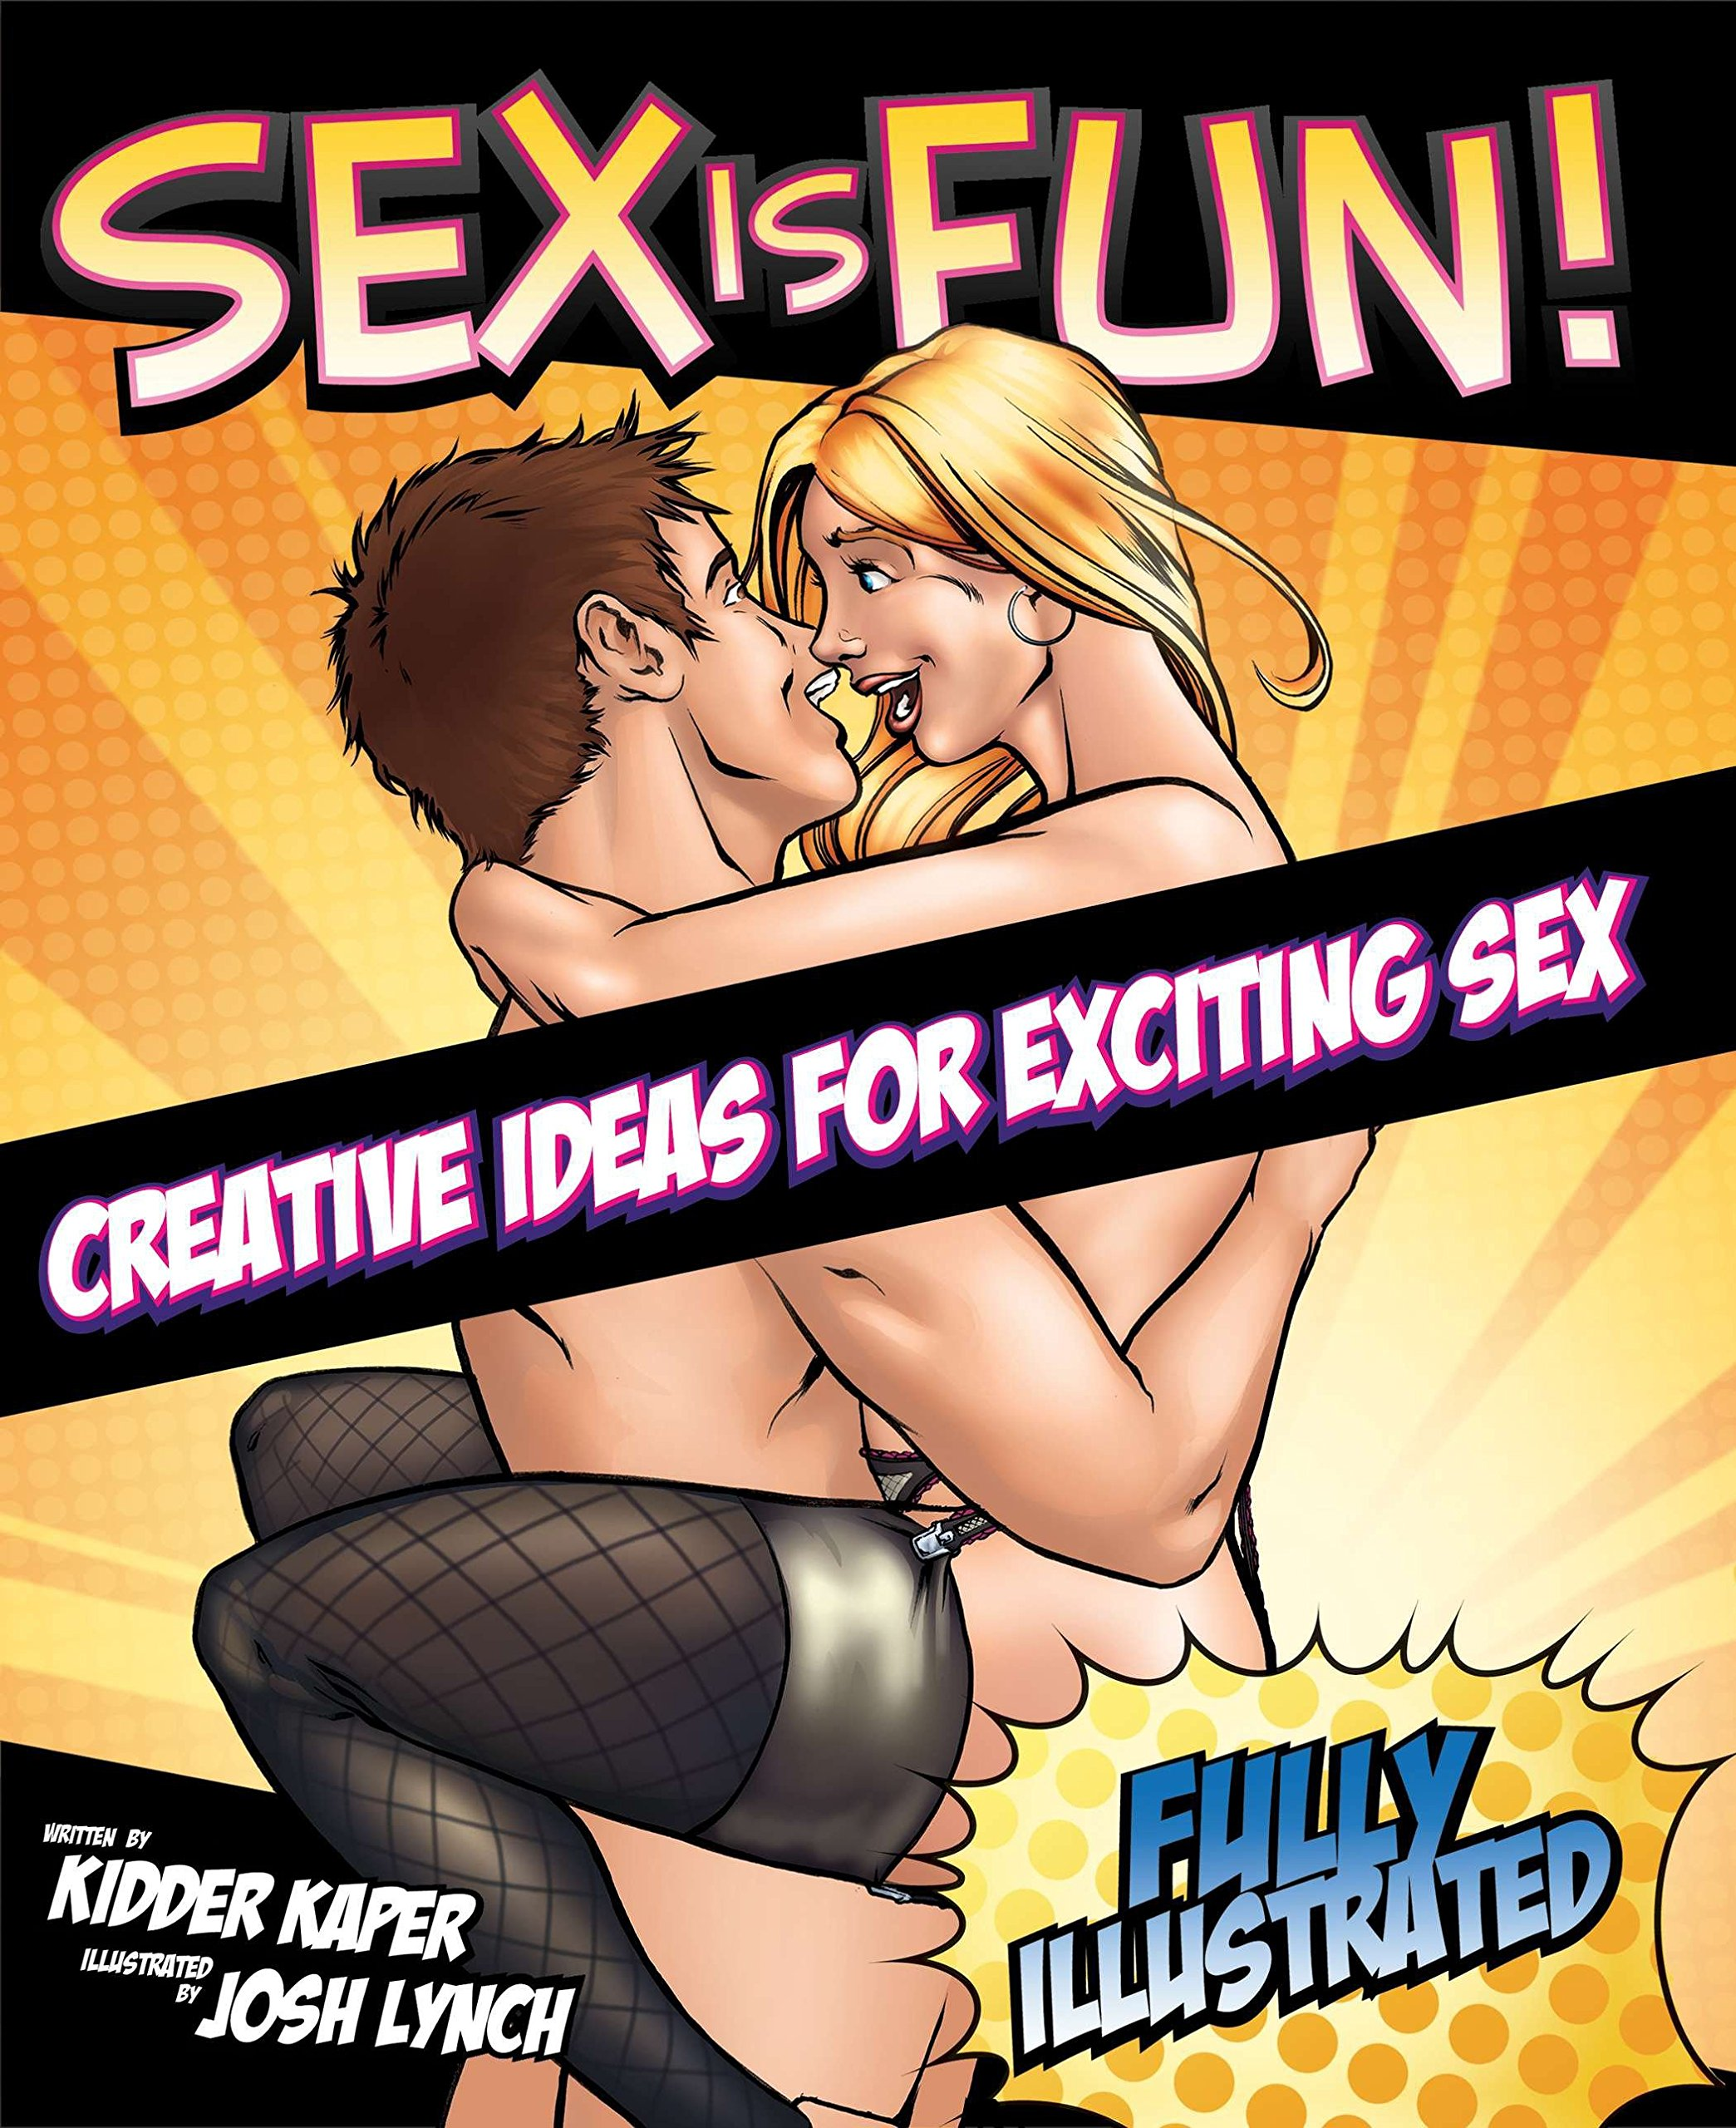 Can help illustrated sex advice